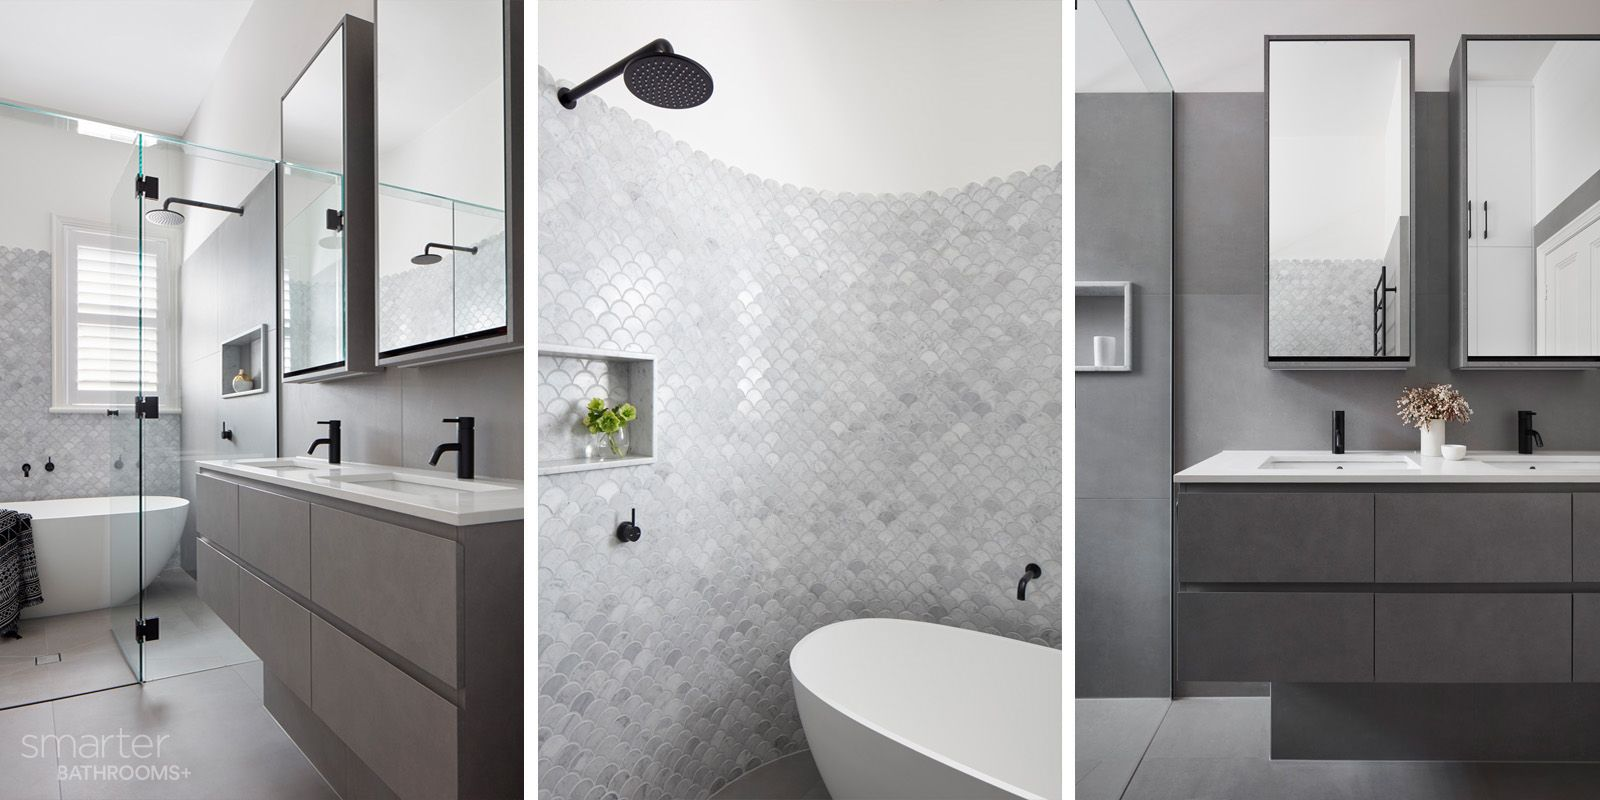 bathroom kitchen renovations melbourne award winning on bathroom renovation ideas melbourne id=58432